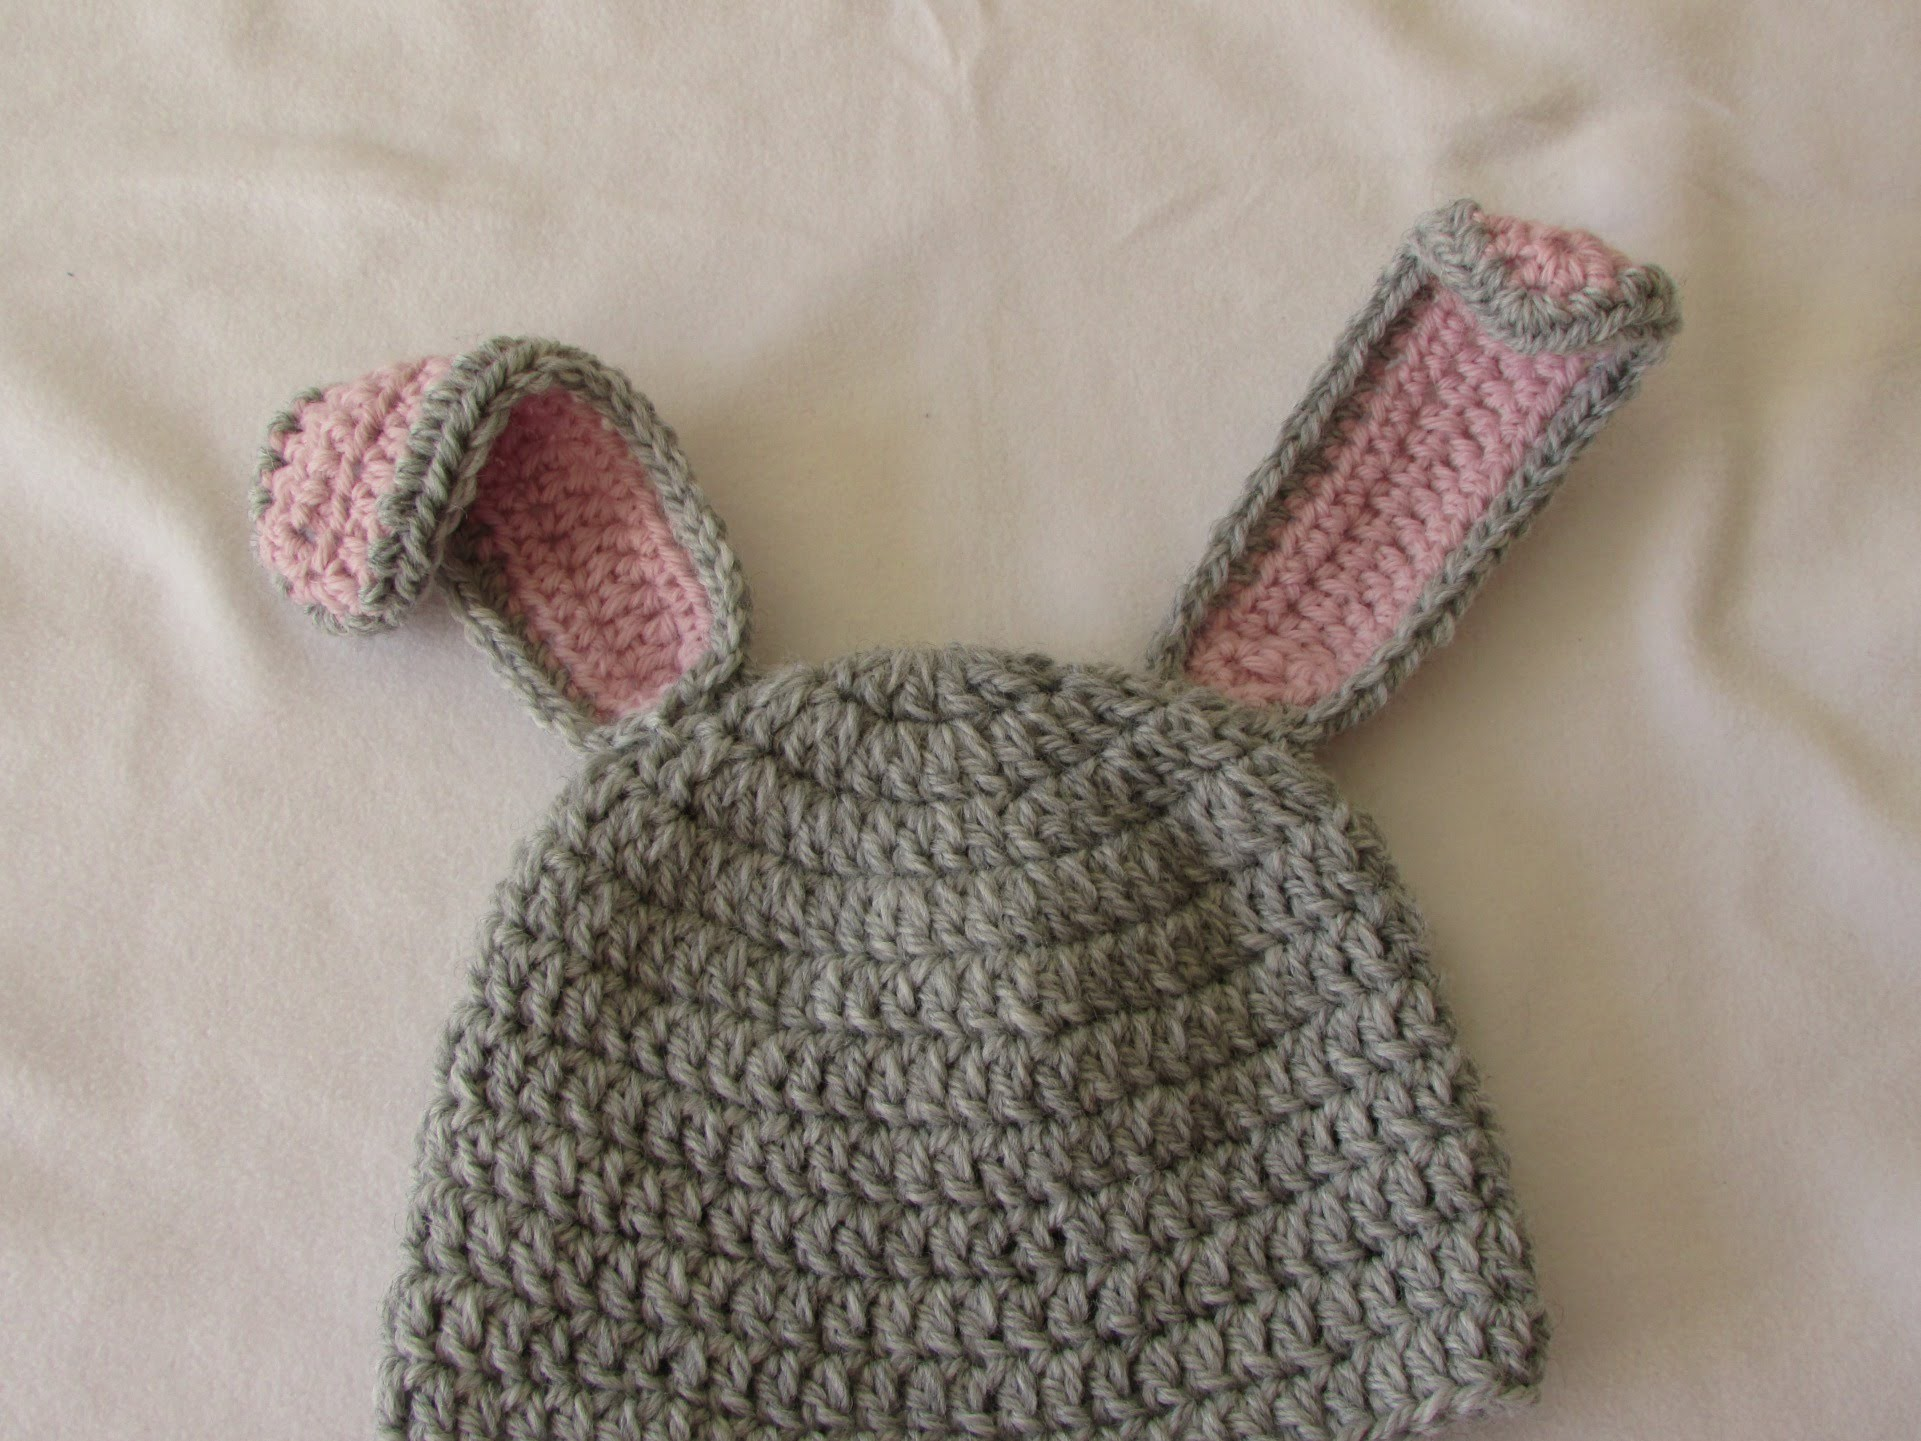 VERY EASY crochet baby. child's bunny hat tutorial - Part 2